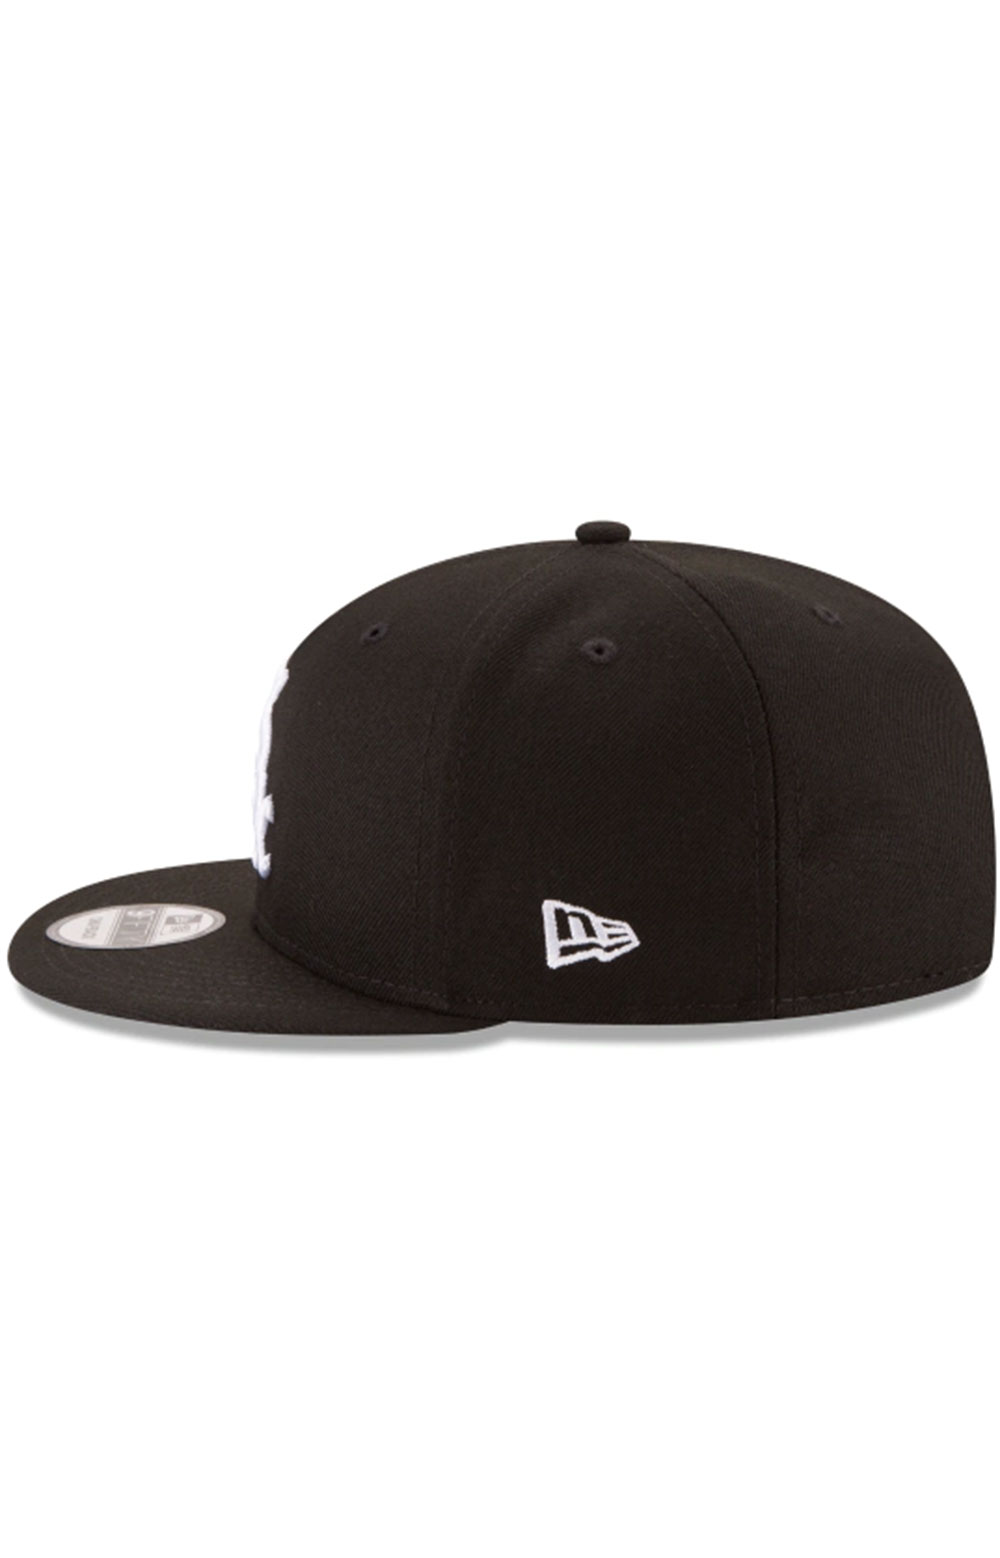 Chicago White Sox Team Color Basic 9Fifty Snap-Back Hat  5